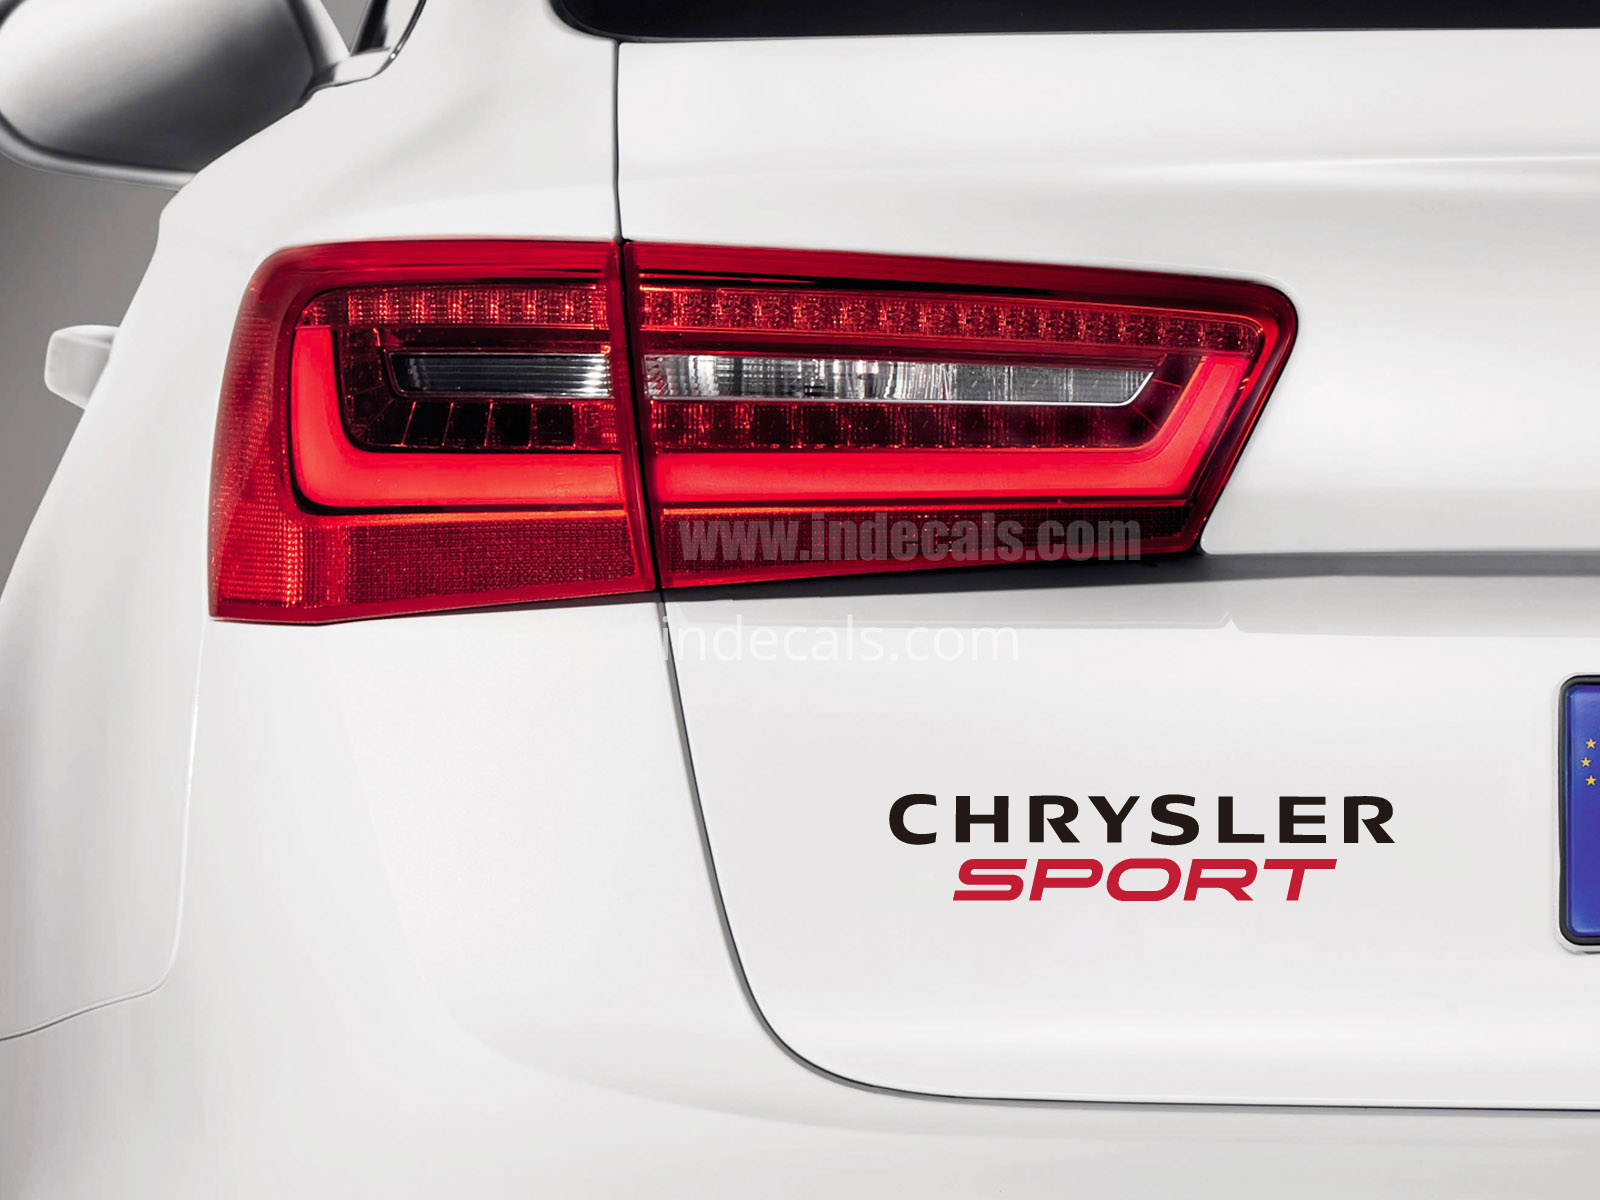 1 x Chrysler Sports Sticker for Trunk - Black & Red